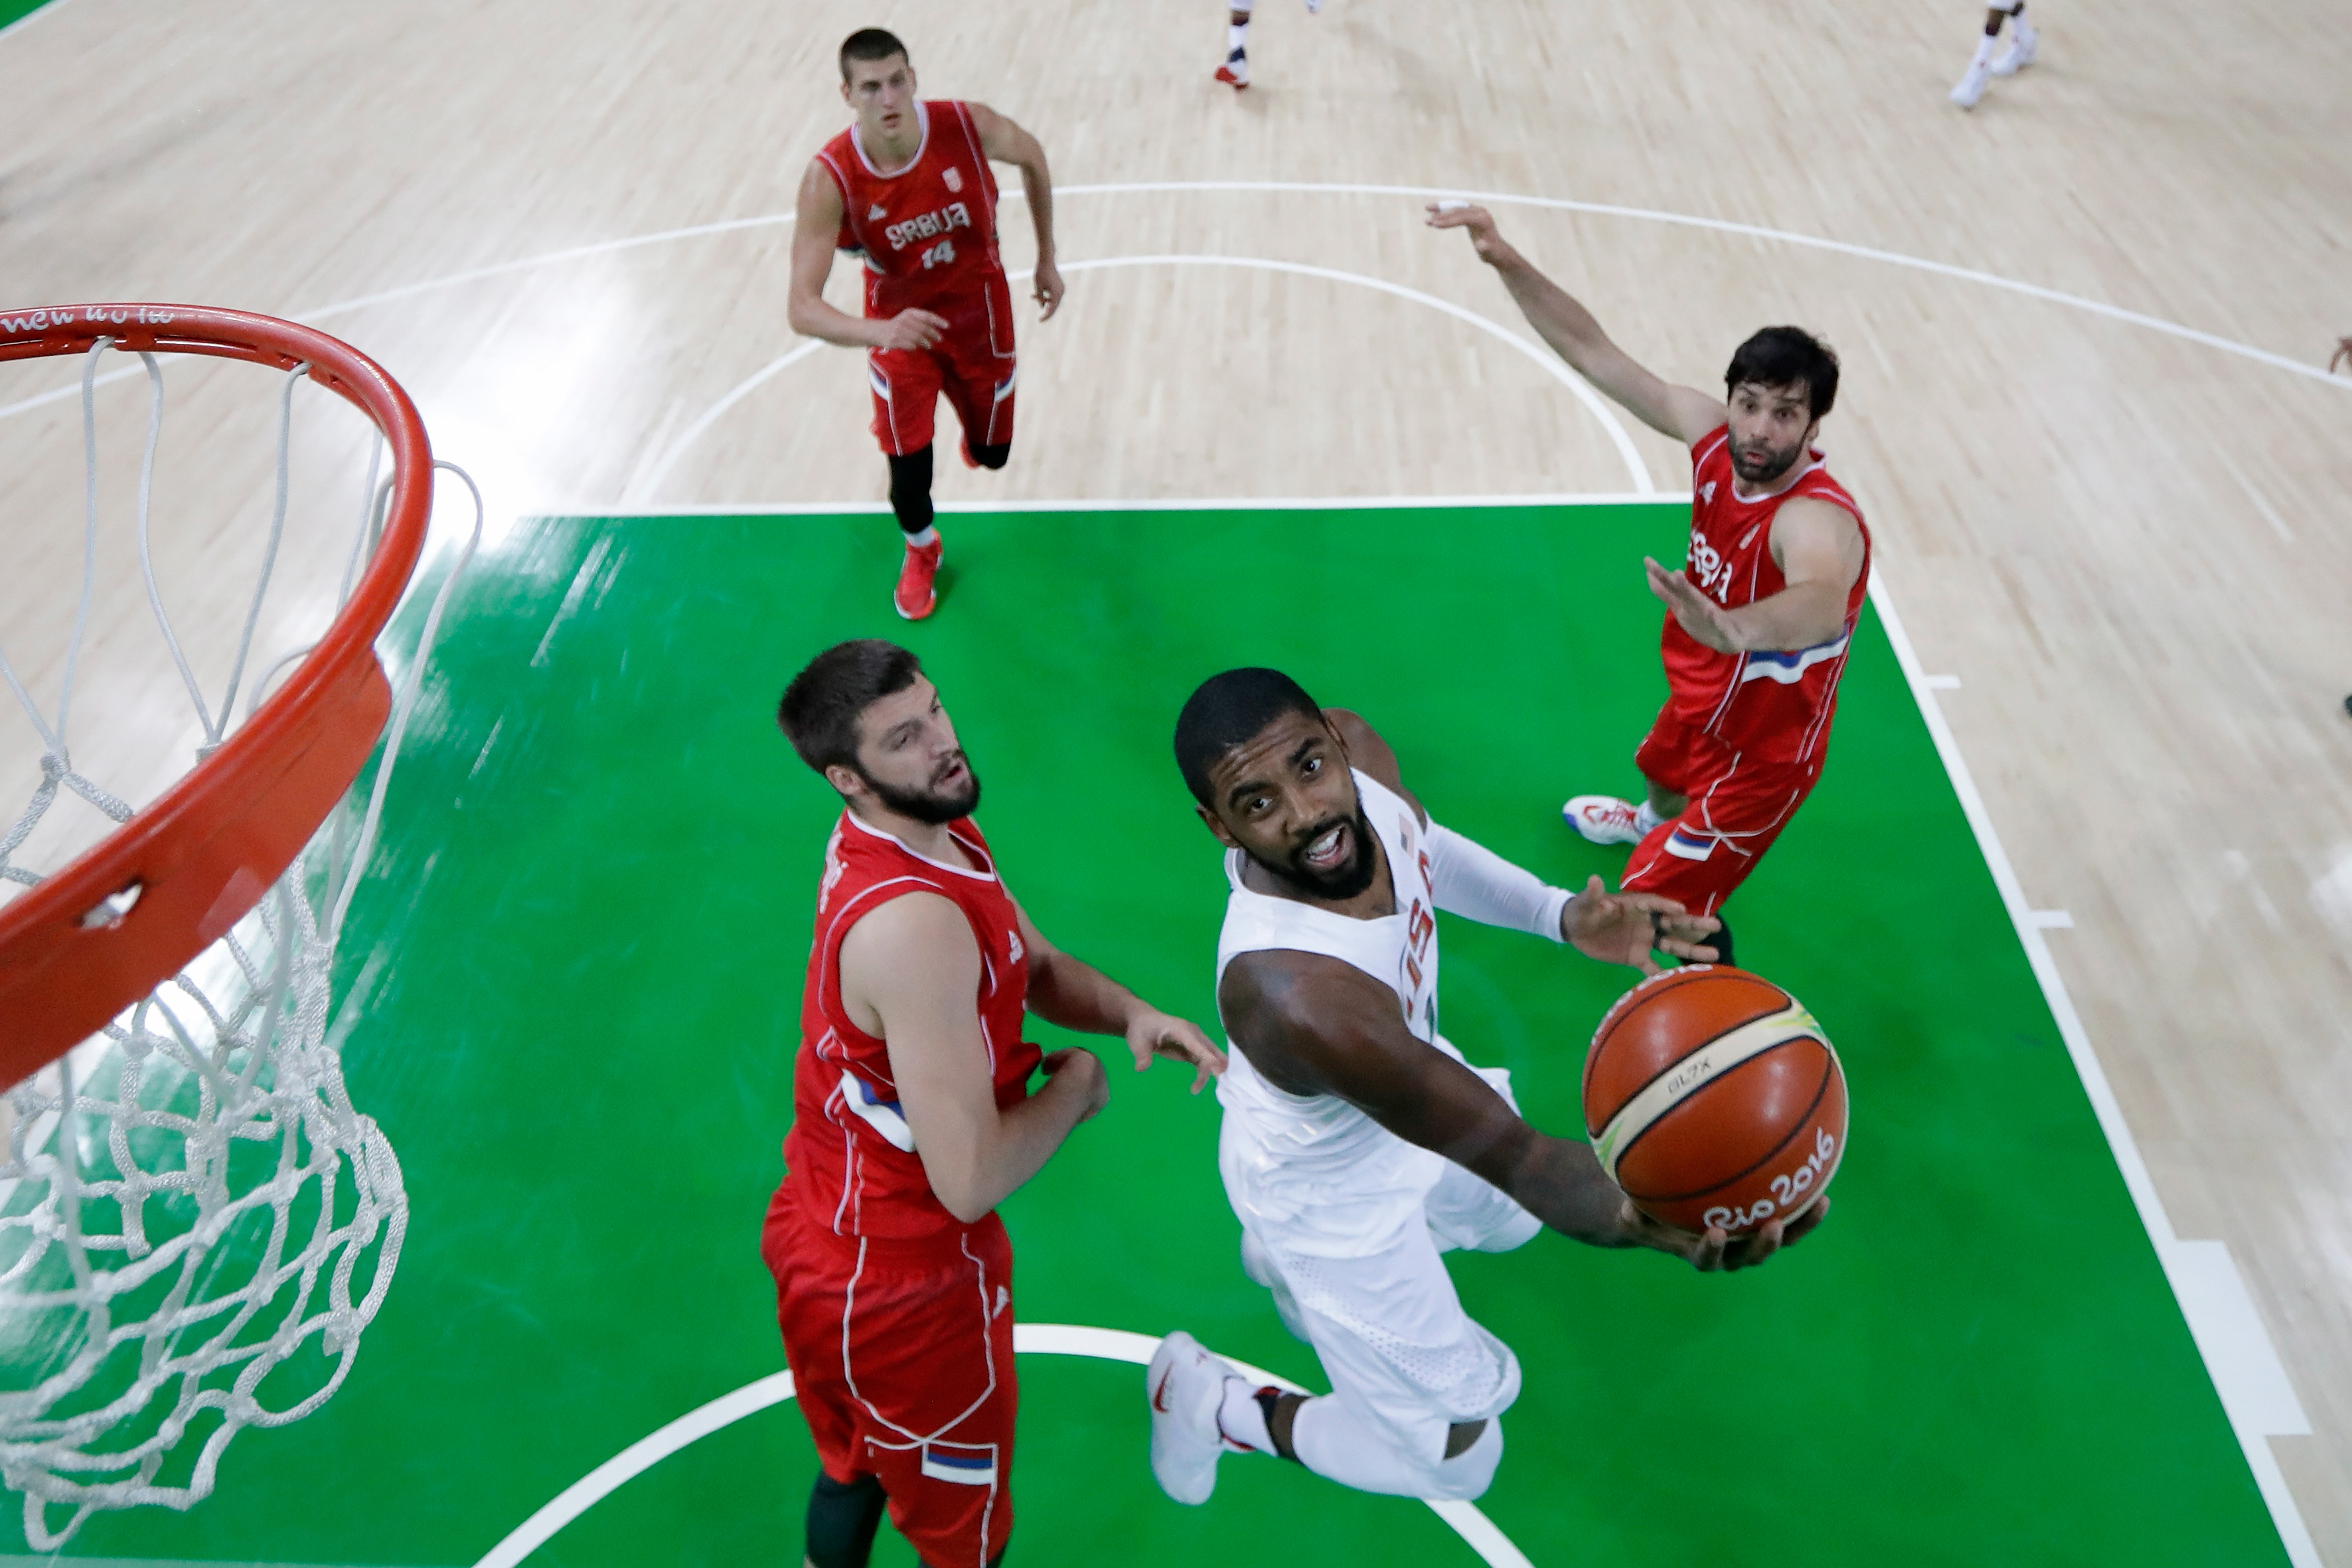 Kyrie Irving of United States goes to the basket against Stefan Markovic of Serbia at the Rio 2016 Olympic Games at Carioca Arena 1 on August 12, 2016 in Rio de Janeiro, Brazil.